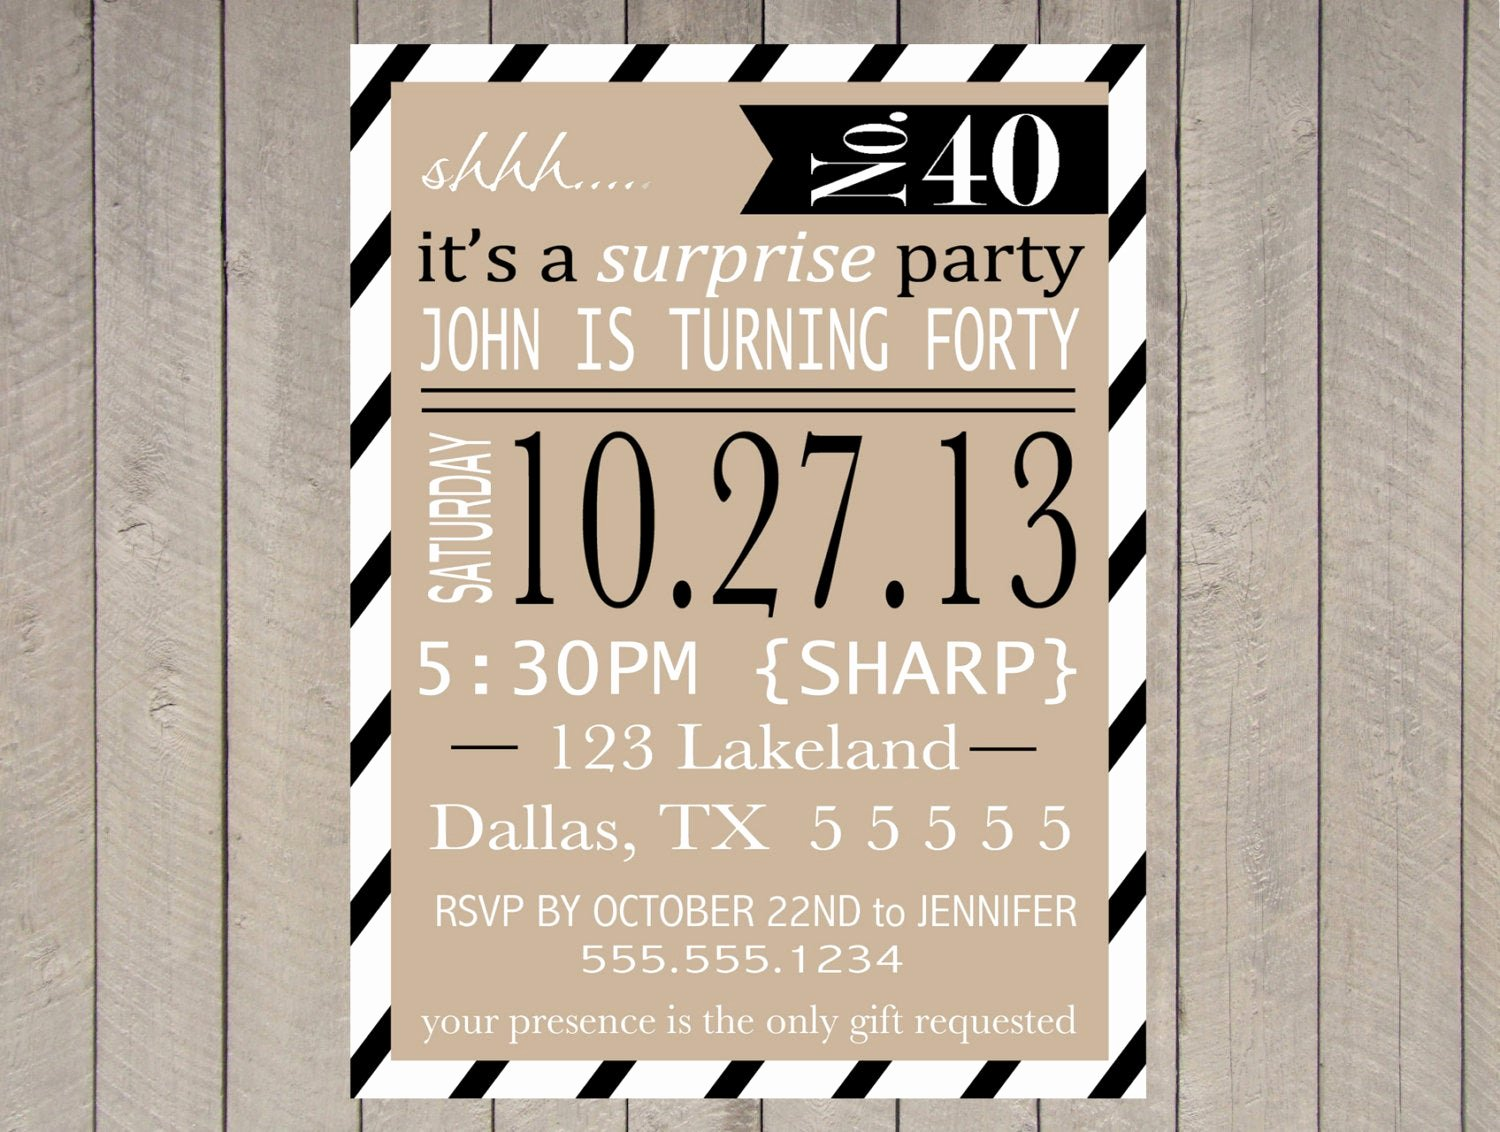 Surprise Party Invites Templates Luxury Items Similar to Adult Surprise Party Invitation Printable 40th Birthday 50th 60th Typography